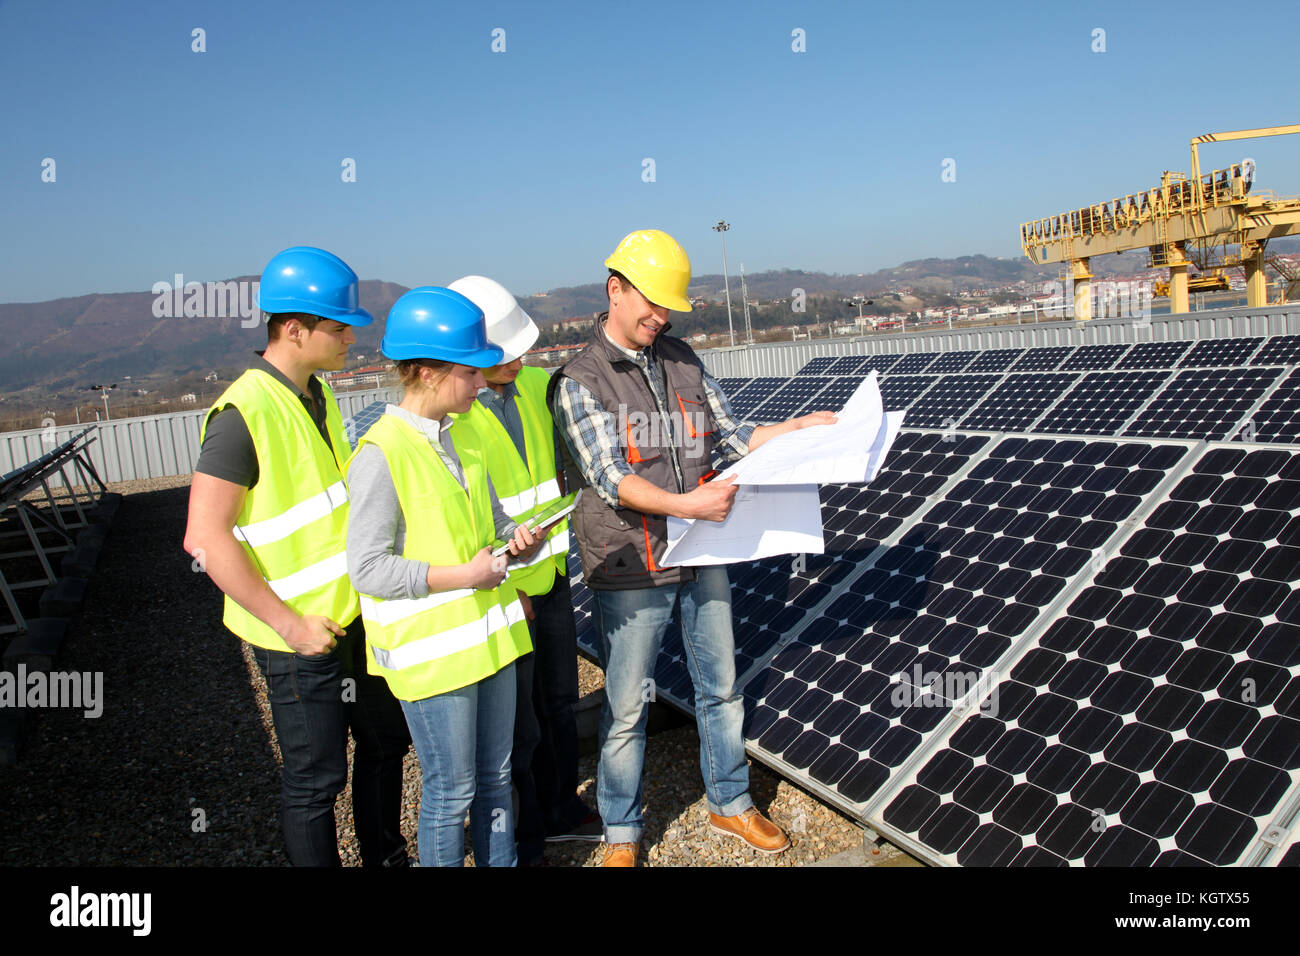 Engineering professional with group of students in training - Stock Image